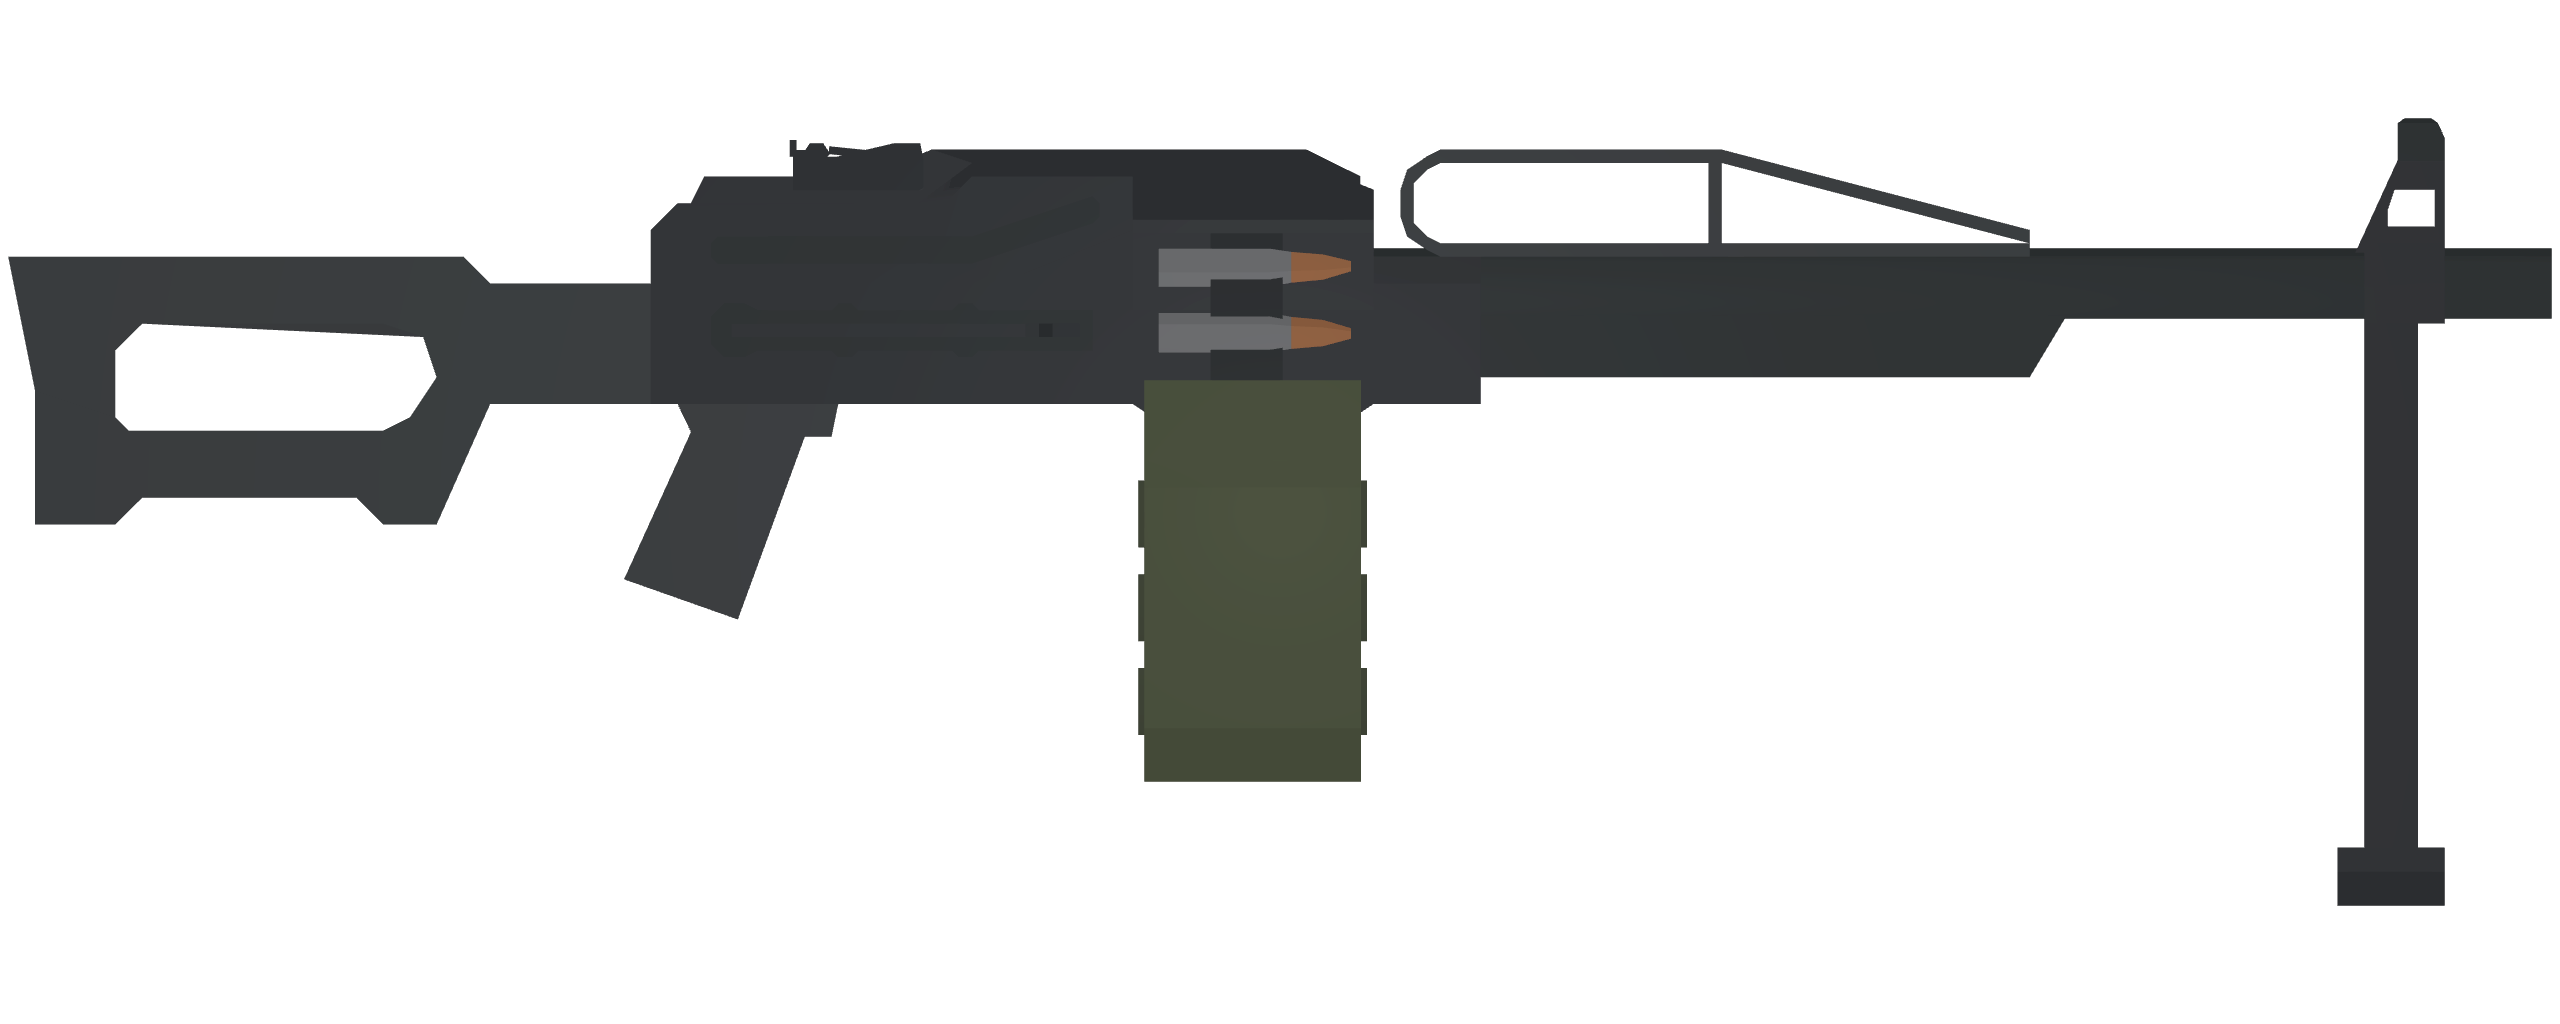 Unturned - All Weapons ID's for Uncreated Warfare Mods - Russian Weapons - 3D50546